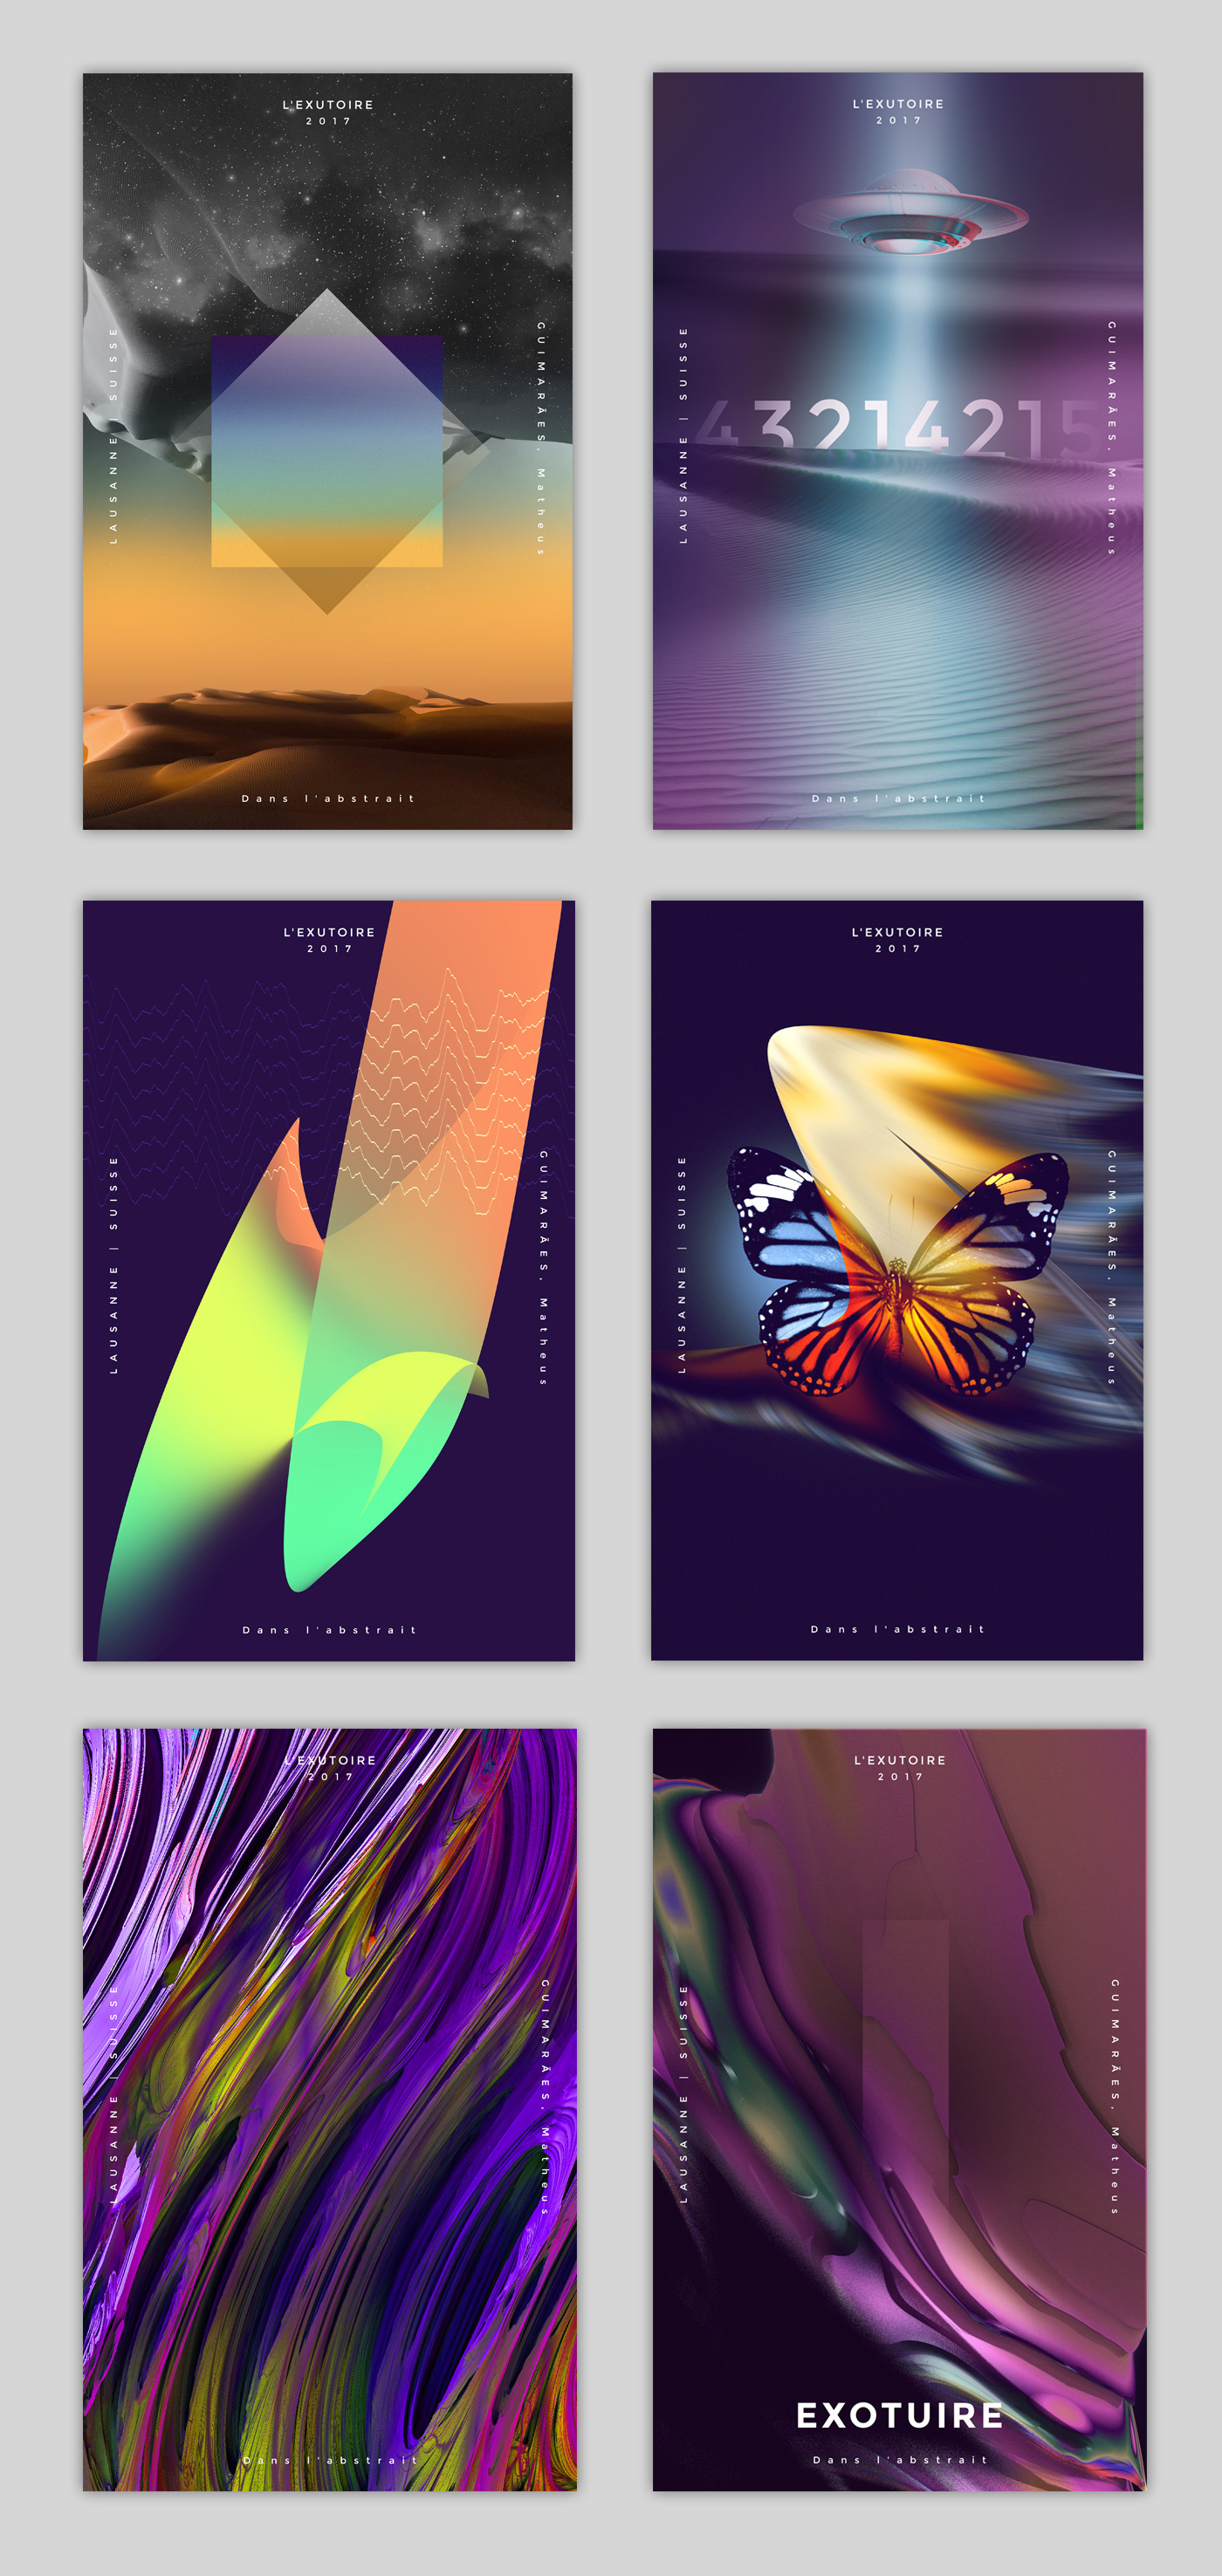 posters design Poster Design Abstract Art abstract digital design Digital abstract poster art